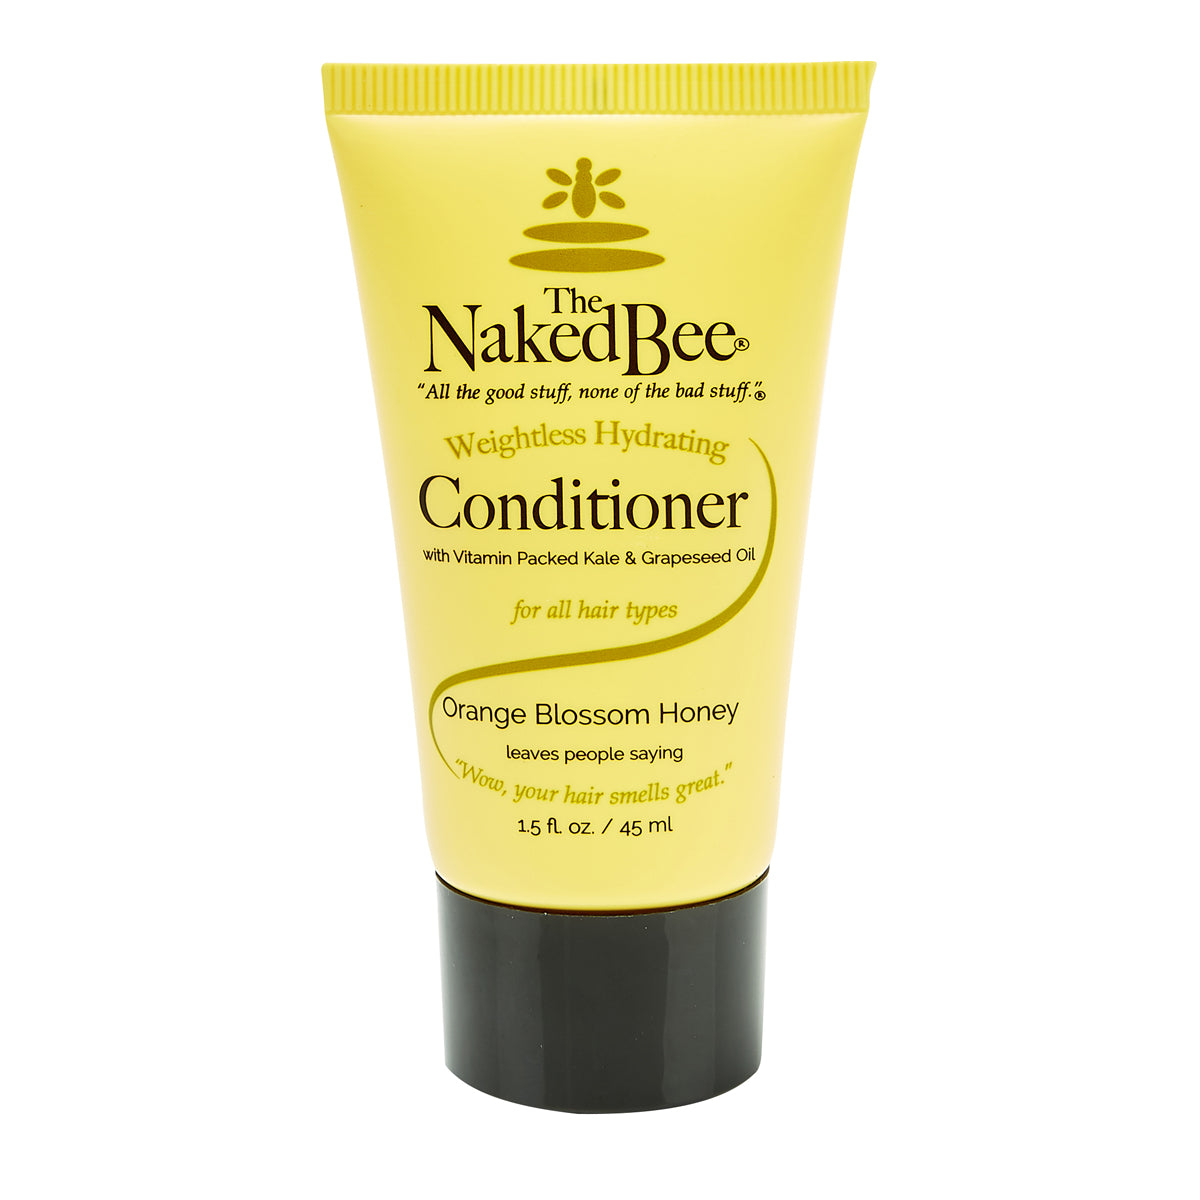 Naked Bee Conditioner - Travel PAKT